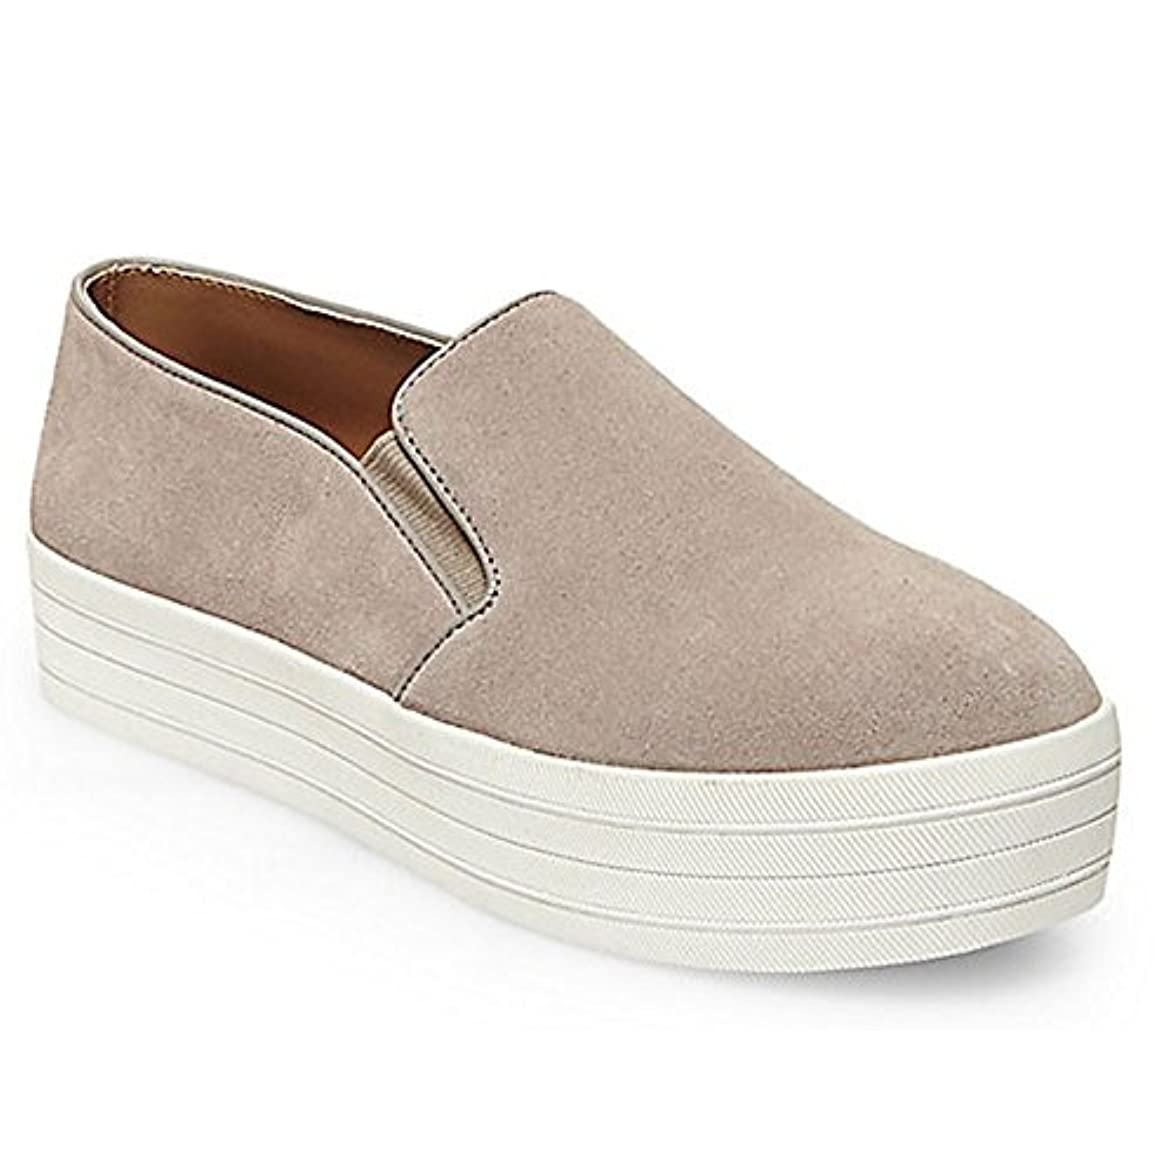 Steve Madden Buhba Taupe Suede Us 6 5